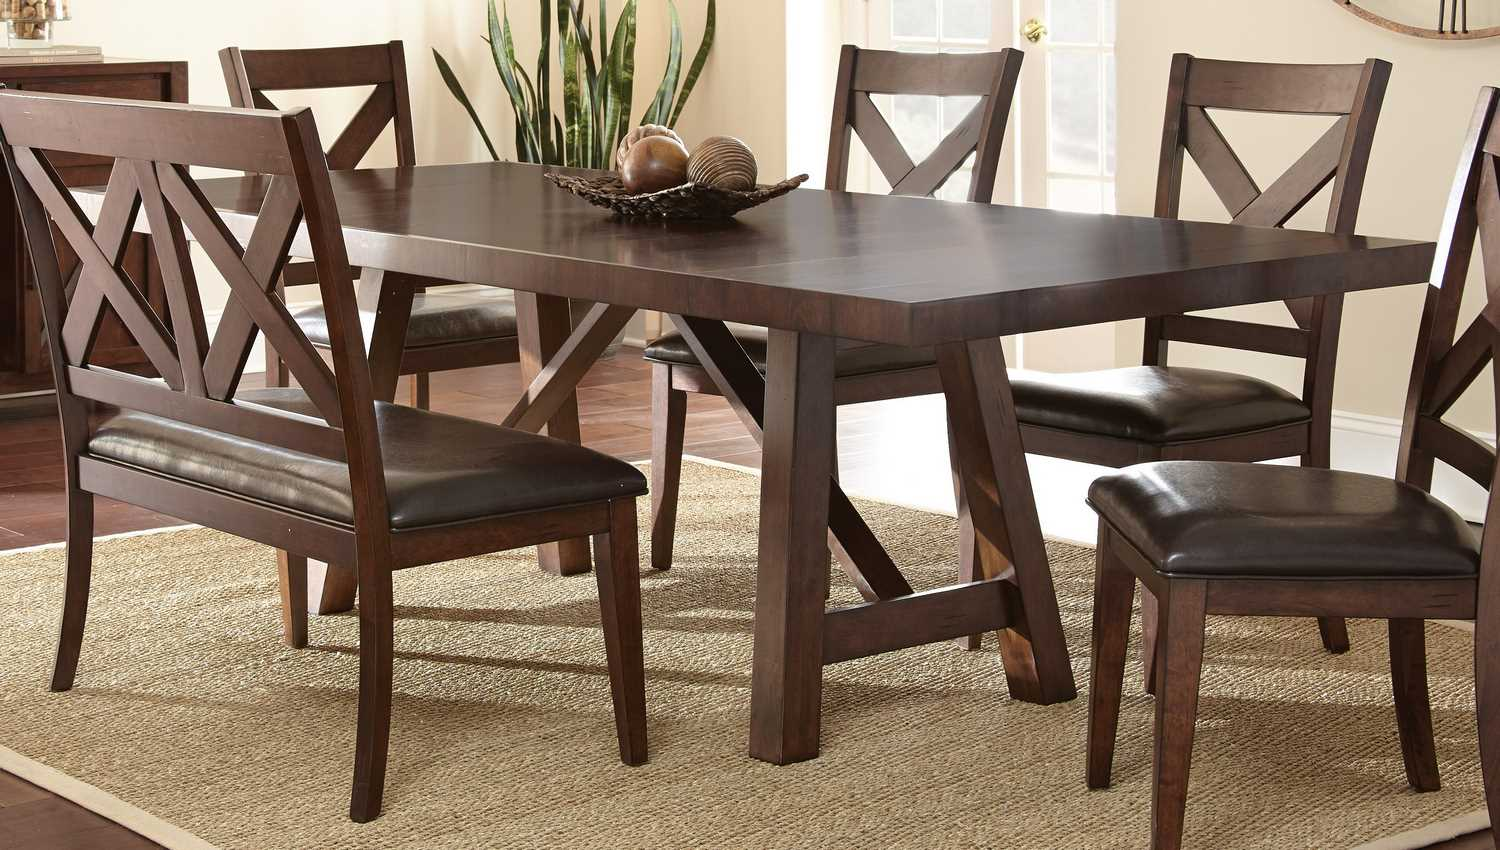 Steve silver clapton 96 42 rectangular dining table in warm distressed espresso furniture mall Home design furniture llc